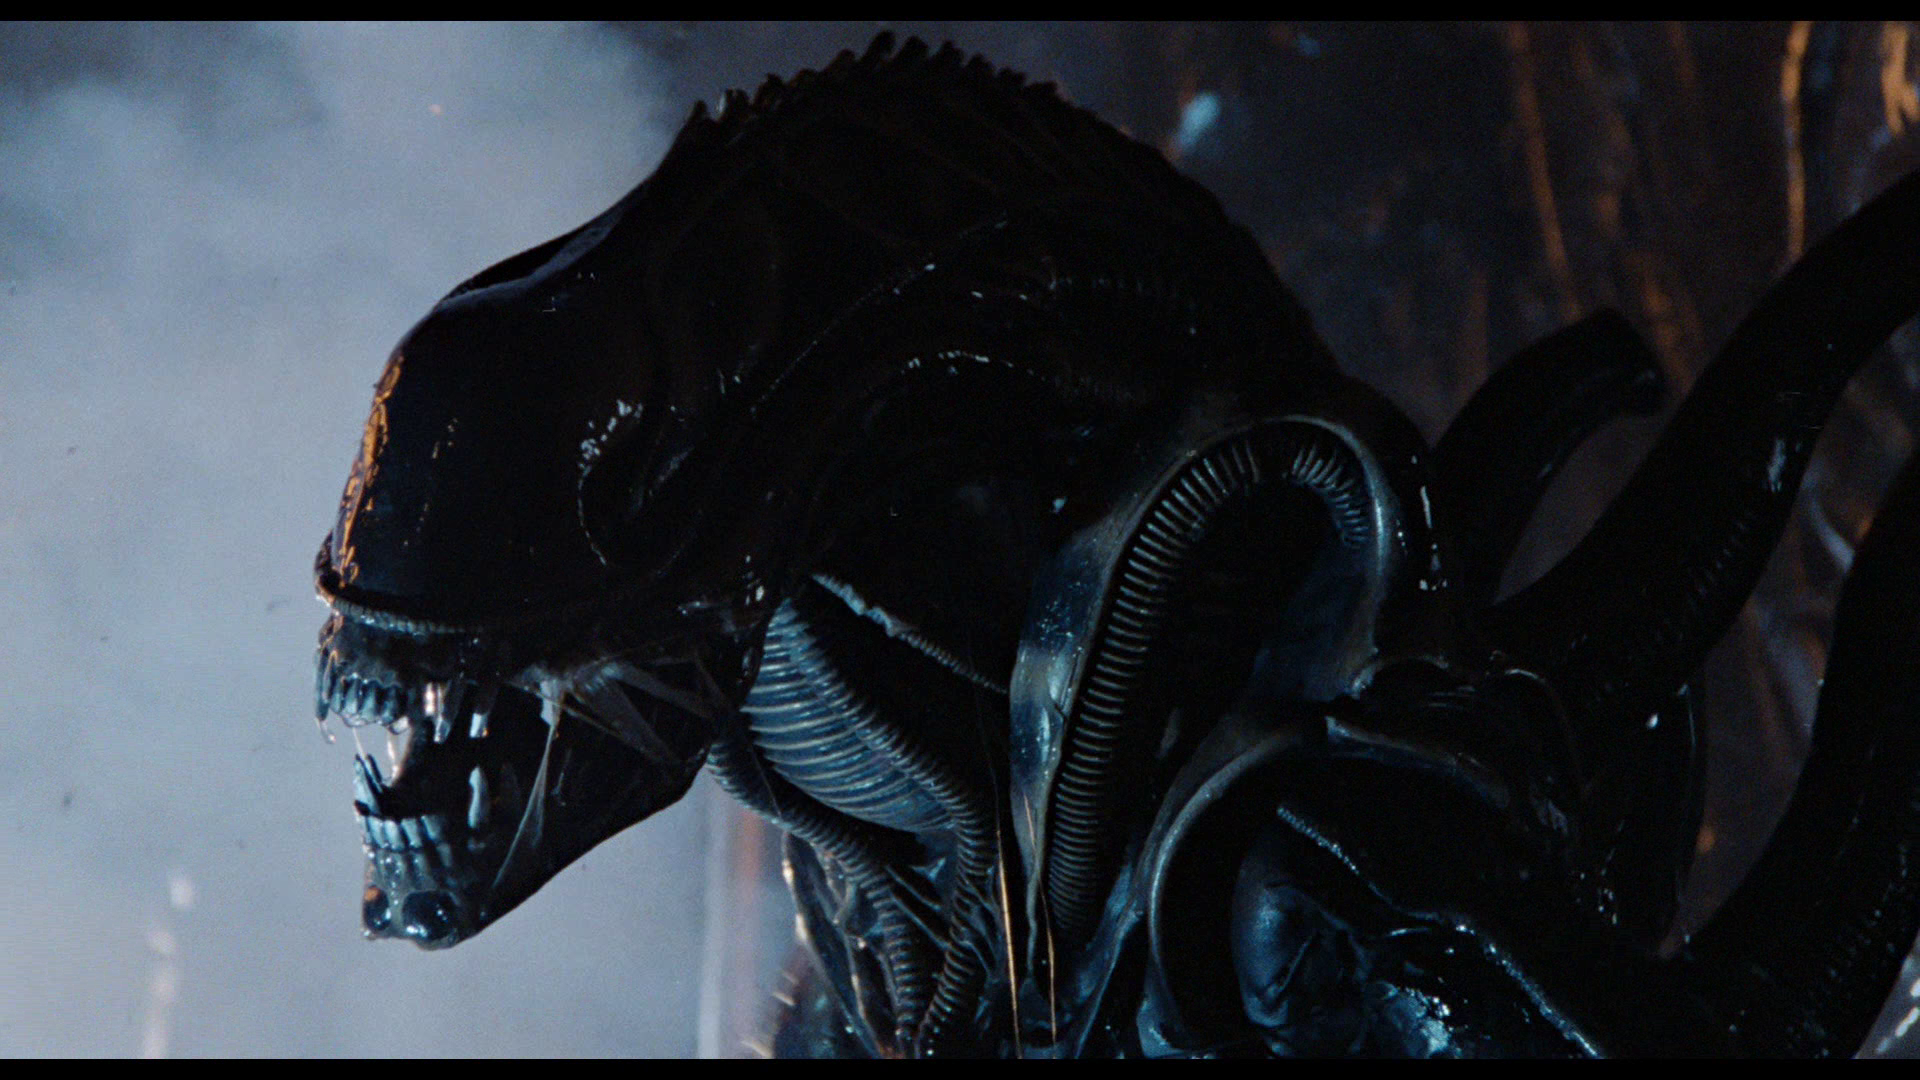 Xenomorph | Alien Species | FANDOM powered by Wikia on yoda's home planet, krypton superman home planet, superman's home planet, chewbacca's home planet, transformers home planet, luke skywalker's home planet, predator home planet, alien home planet,